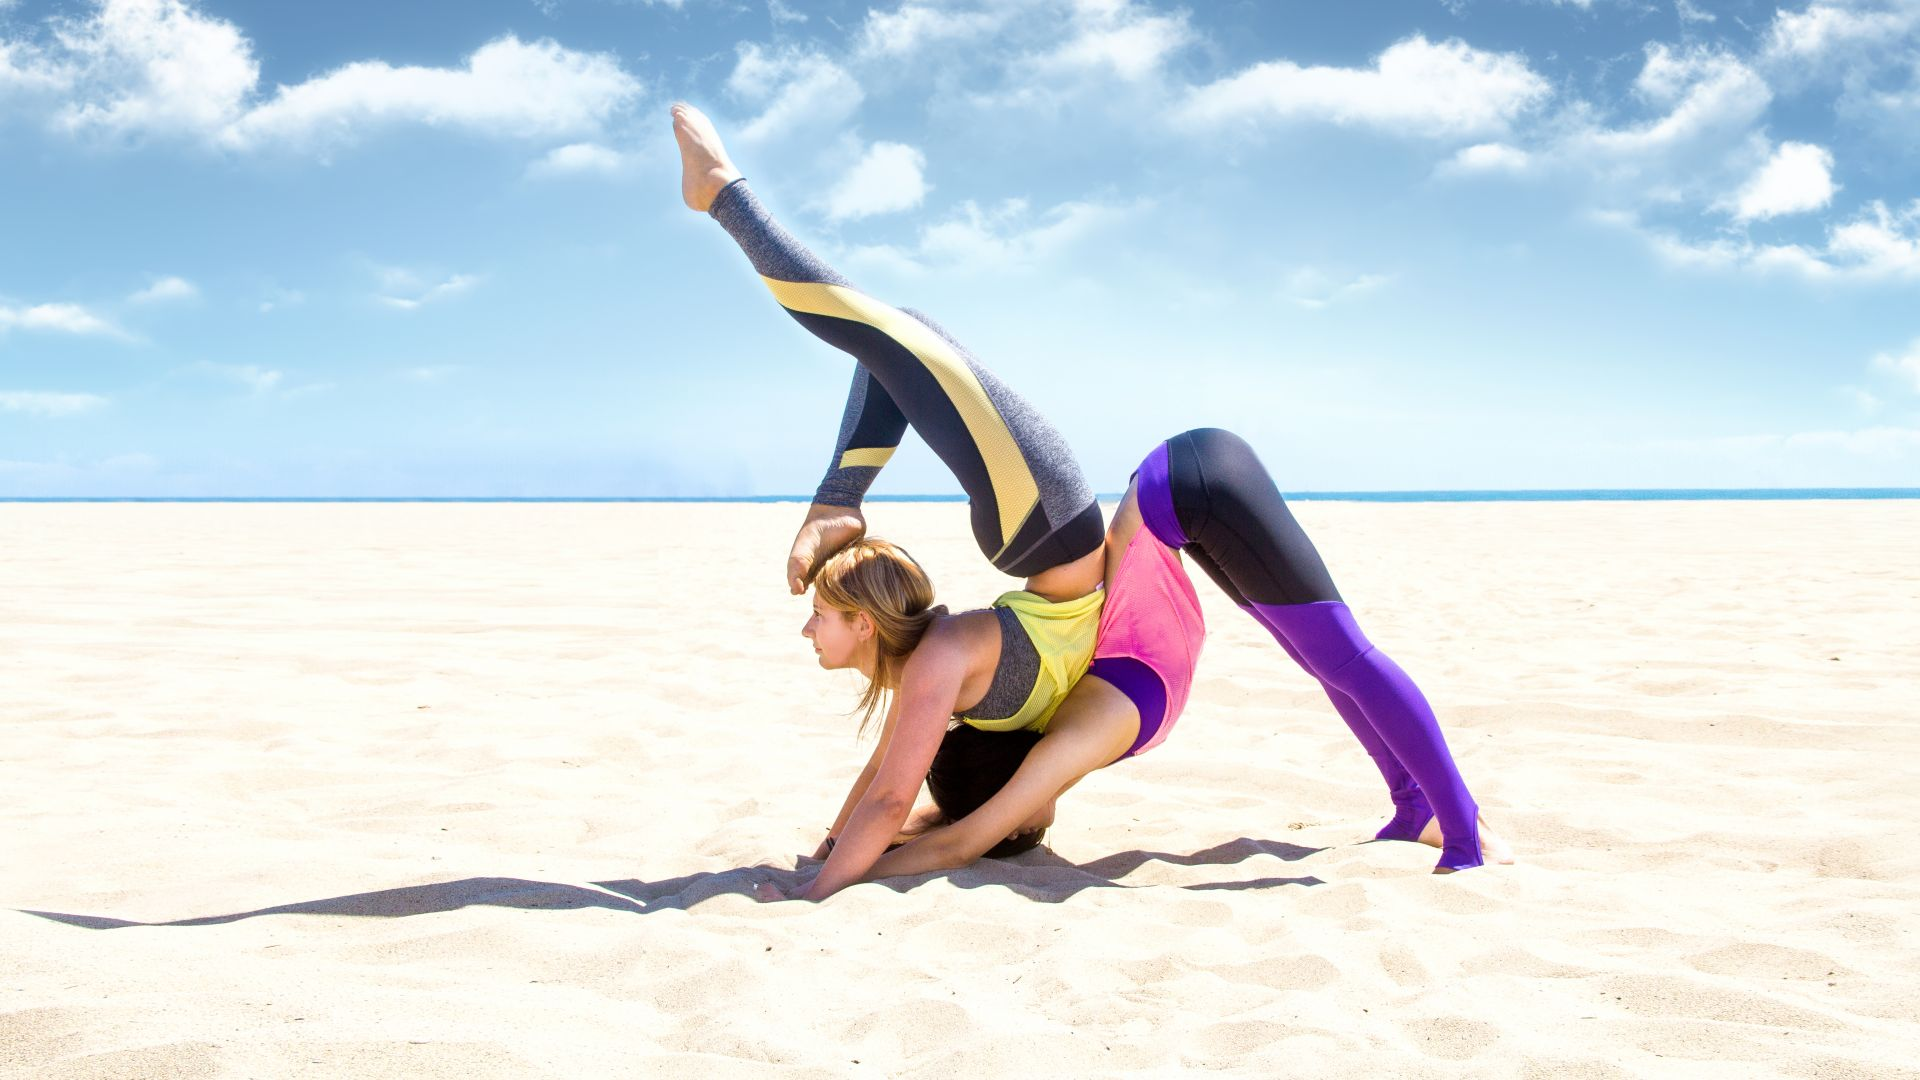 yoga, girl, weight loss, beach, sand, sky, relax, Fitness (horizontal)